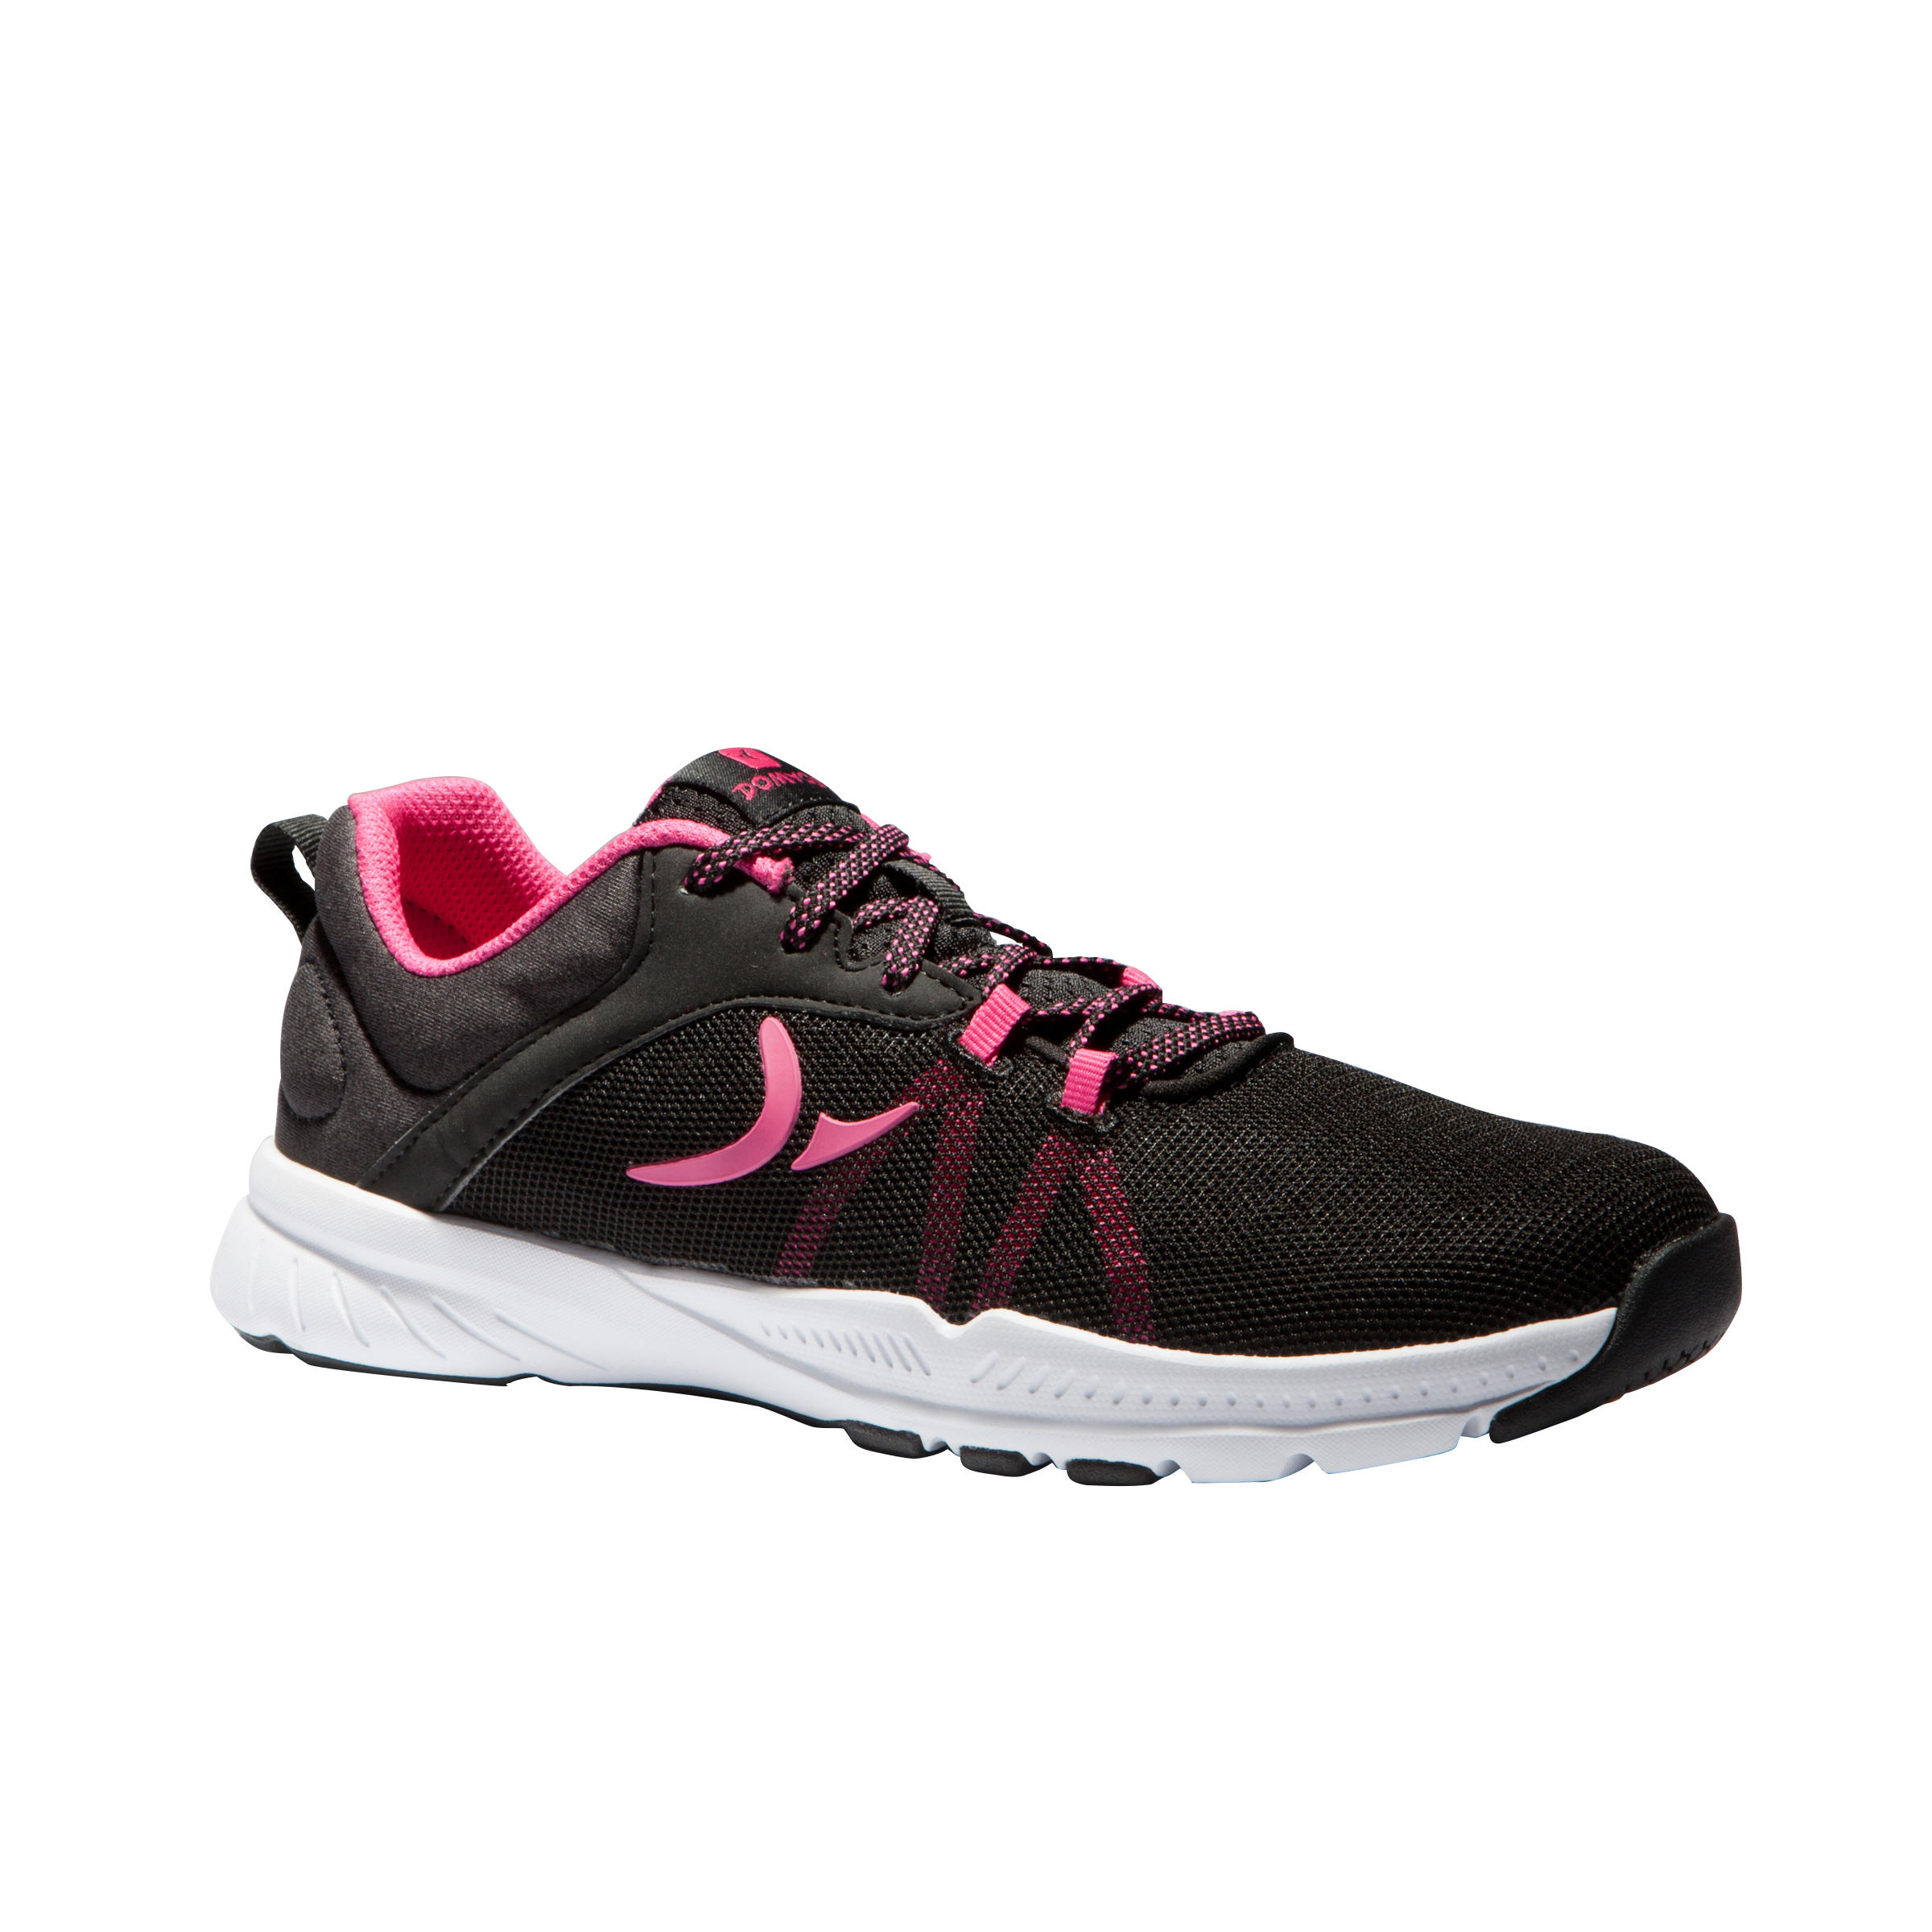 Fitness Cardio Training Shoes - Black/Pink